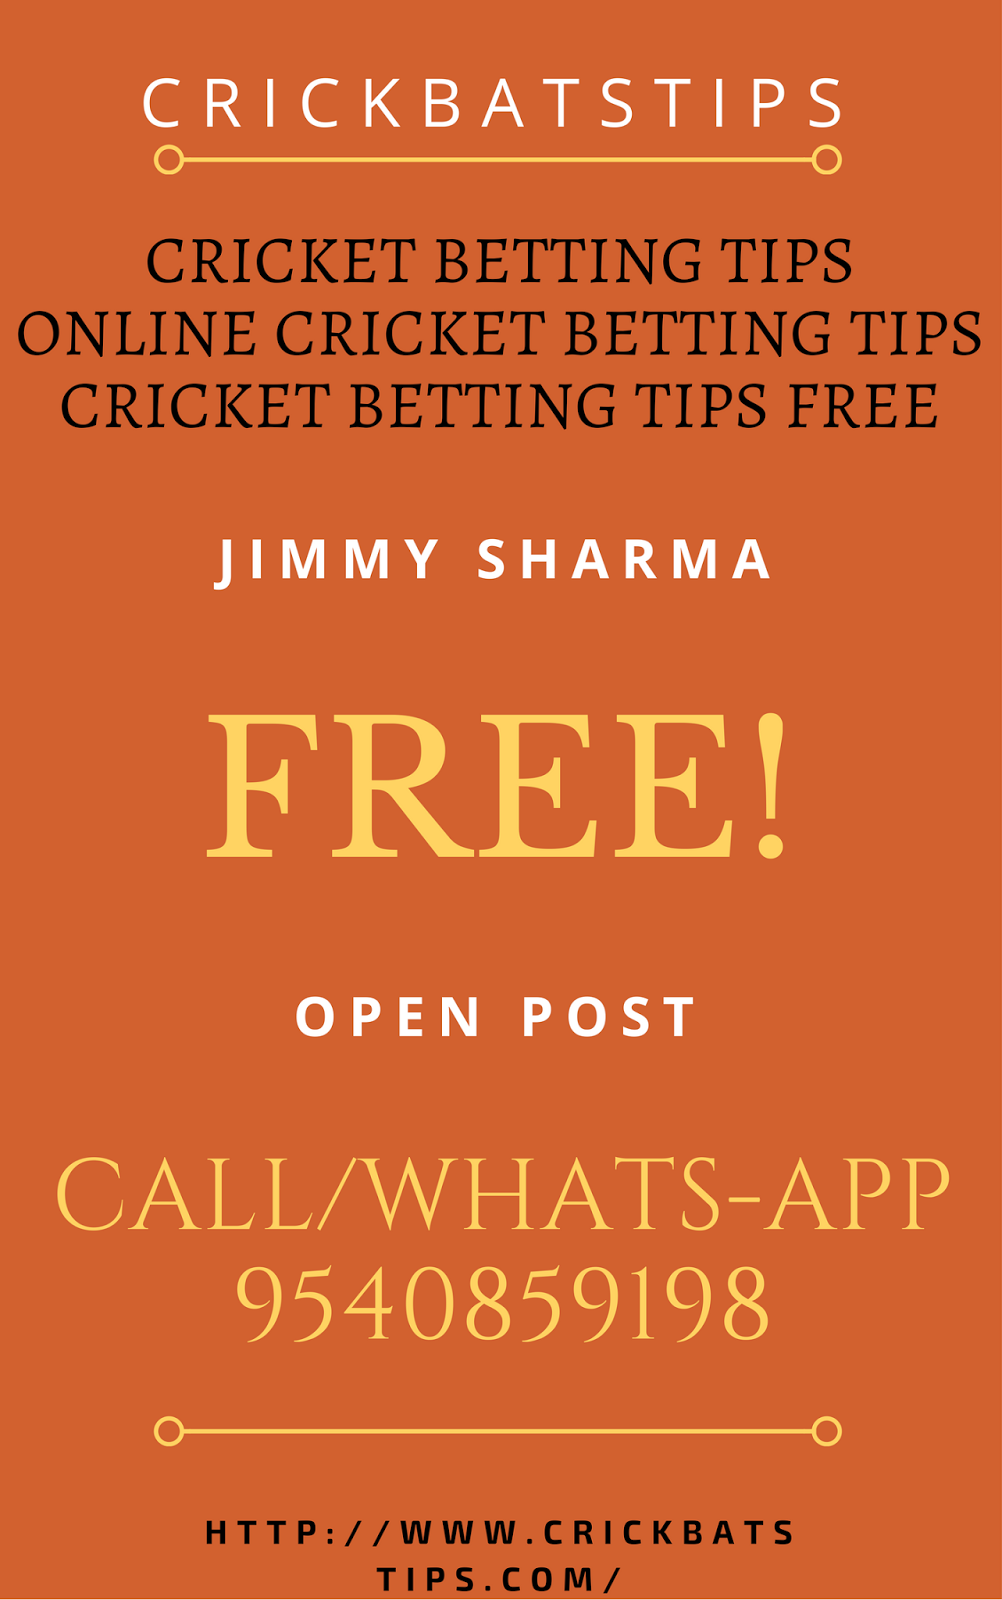 Jamaica Tallawahs vs St Kitts Nevis Patriots Eliminator Betting Tips